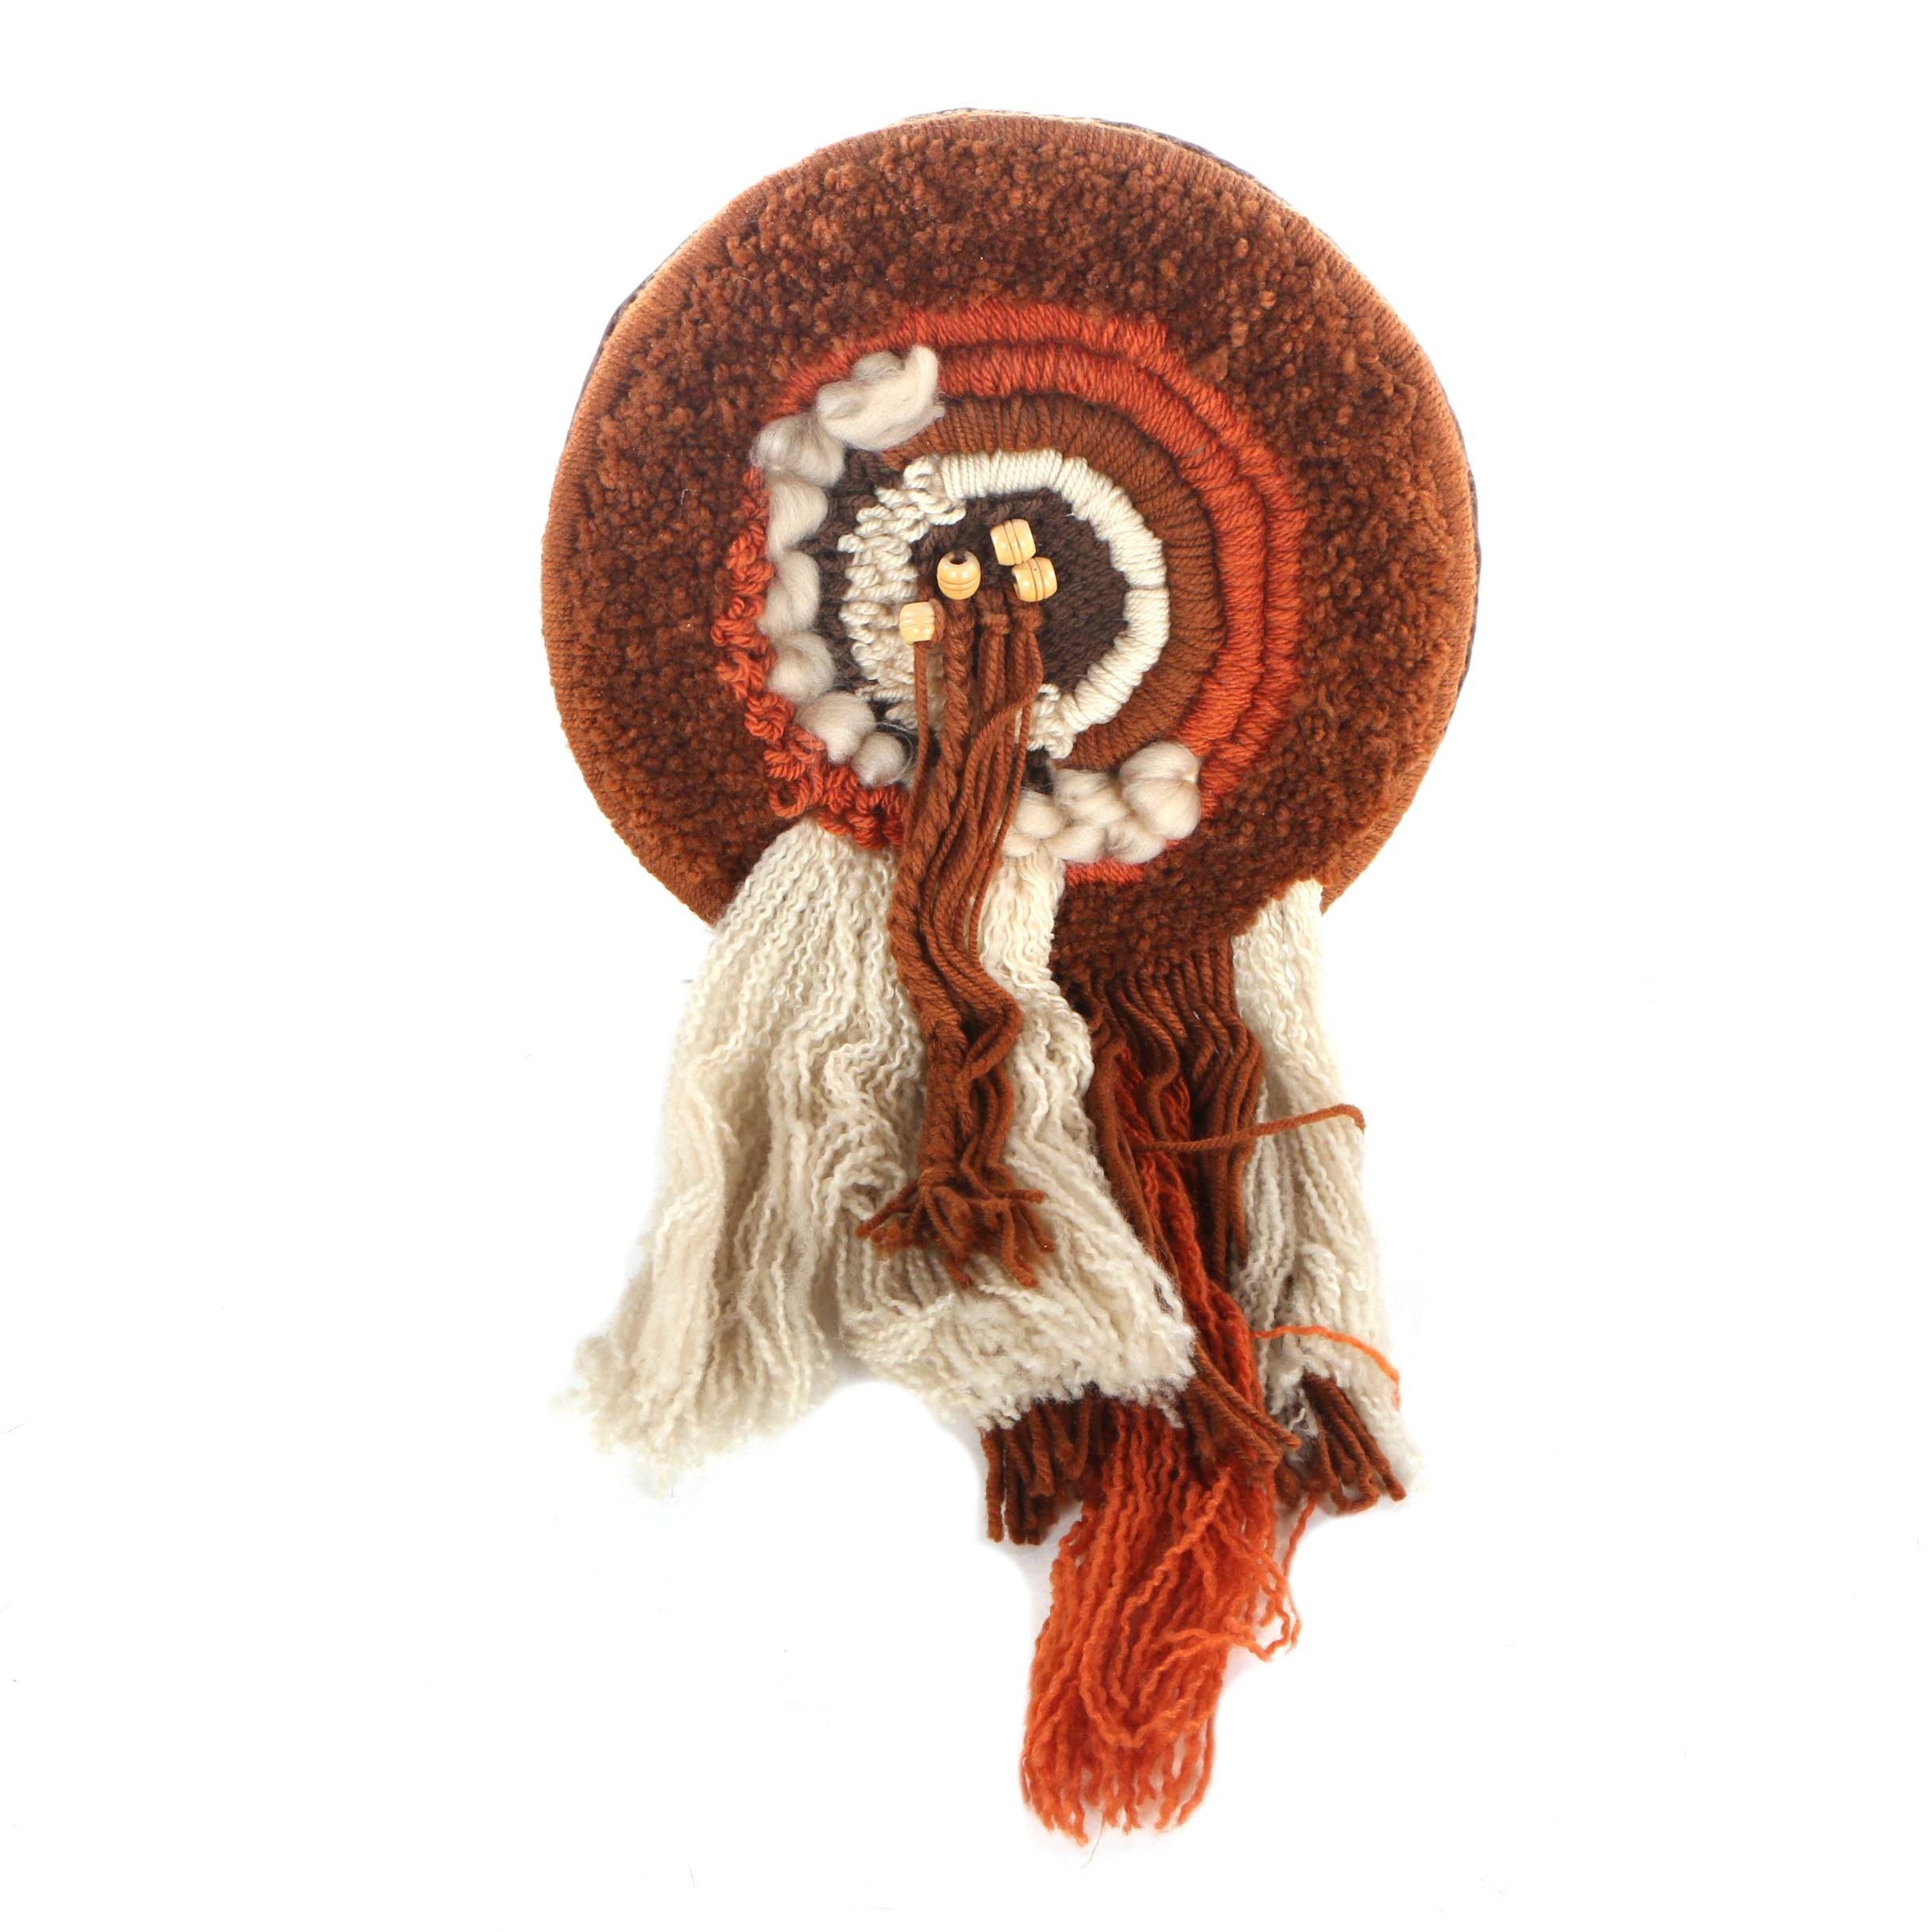 Handmade Fiber Art Wall Hanging with Wool and other Yarns